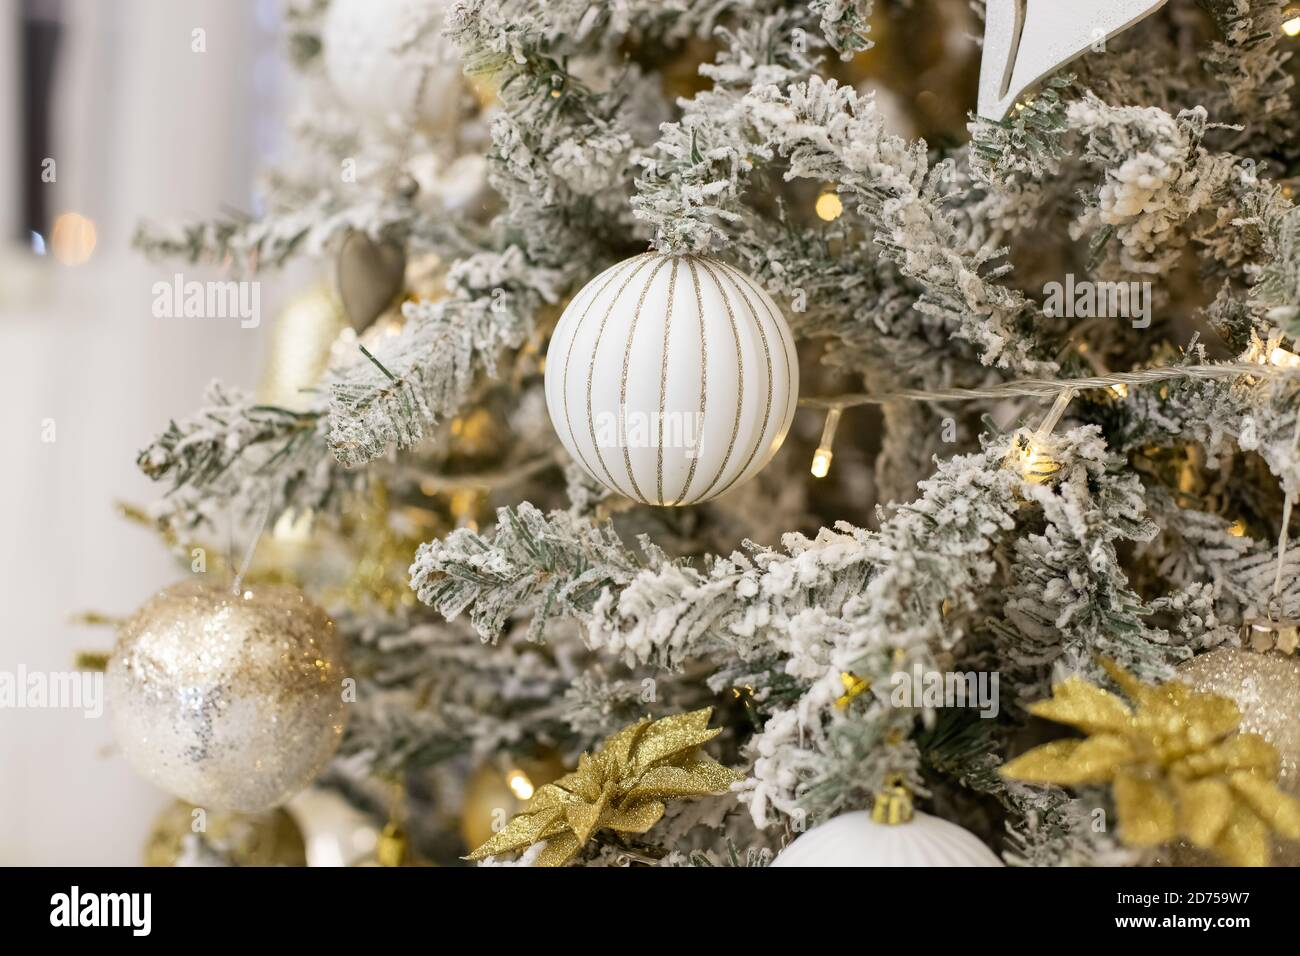 Christmas Tree With A White Baubles Luxury New Year Decor Beige White Golden Silver Christmas Tree Decoration Merry Christmas And Happy Holidays Stock Photo Alamy